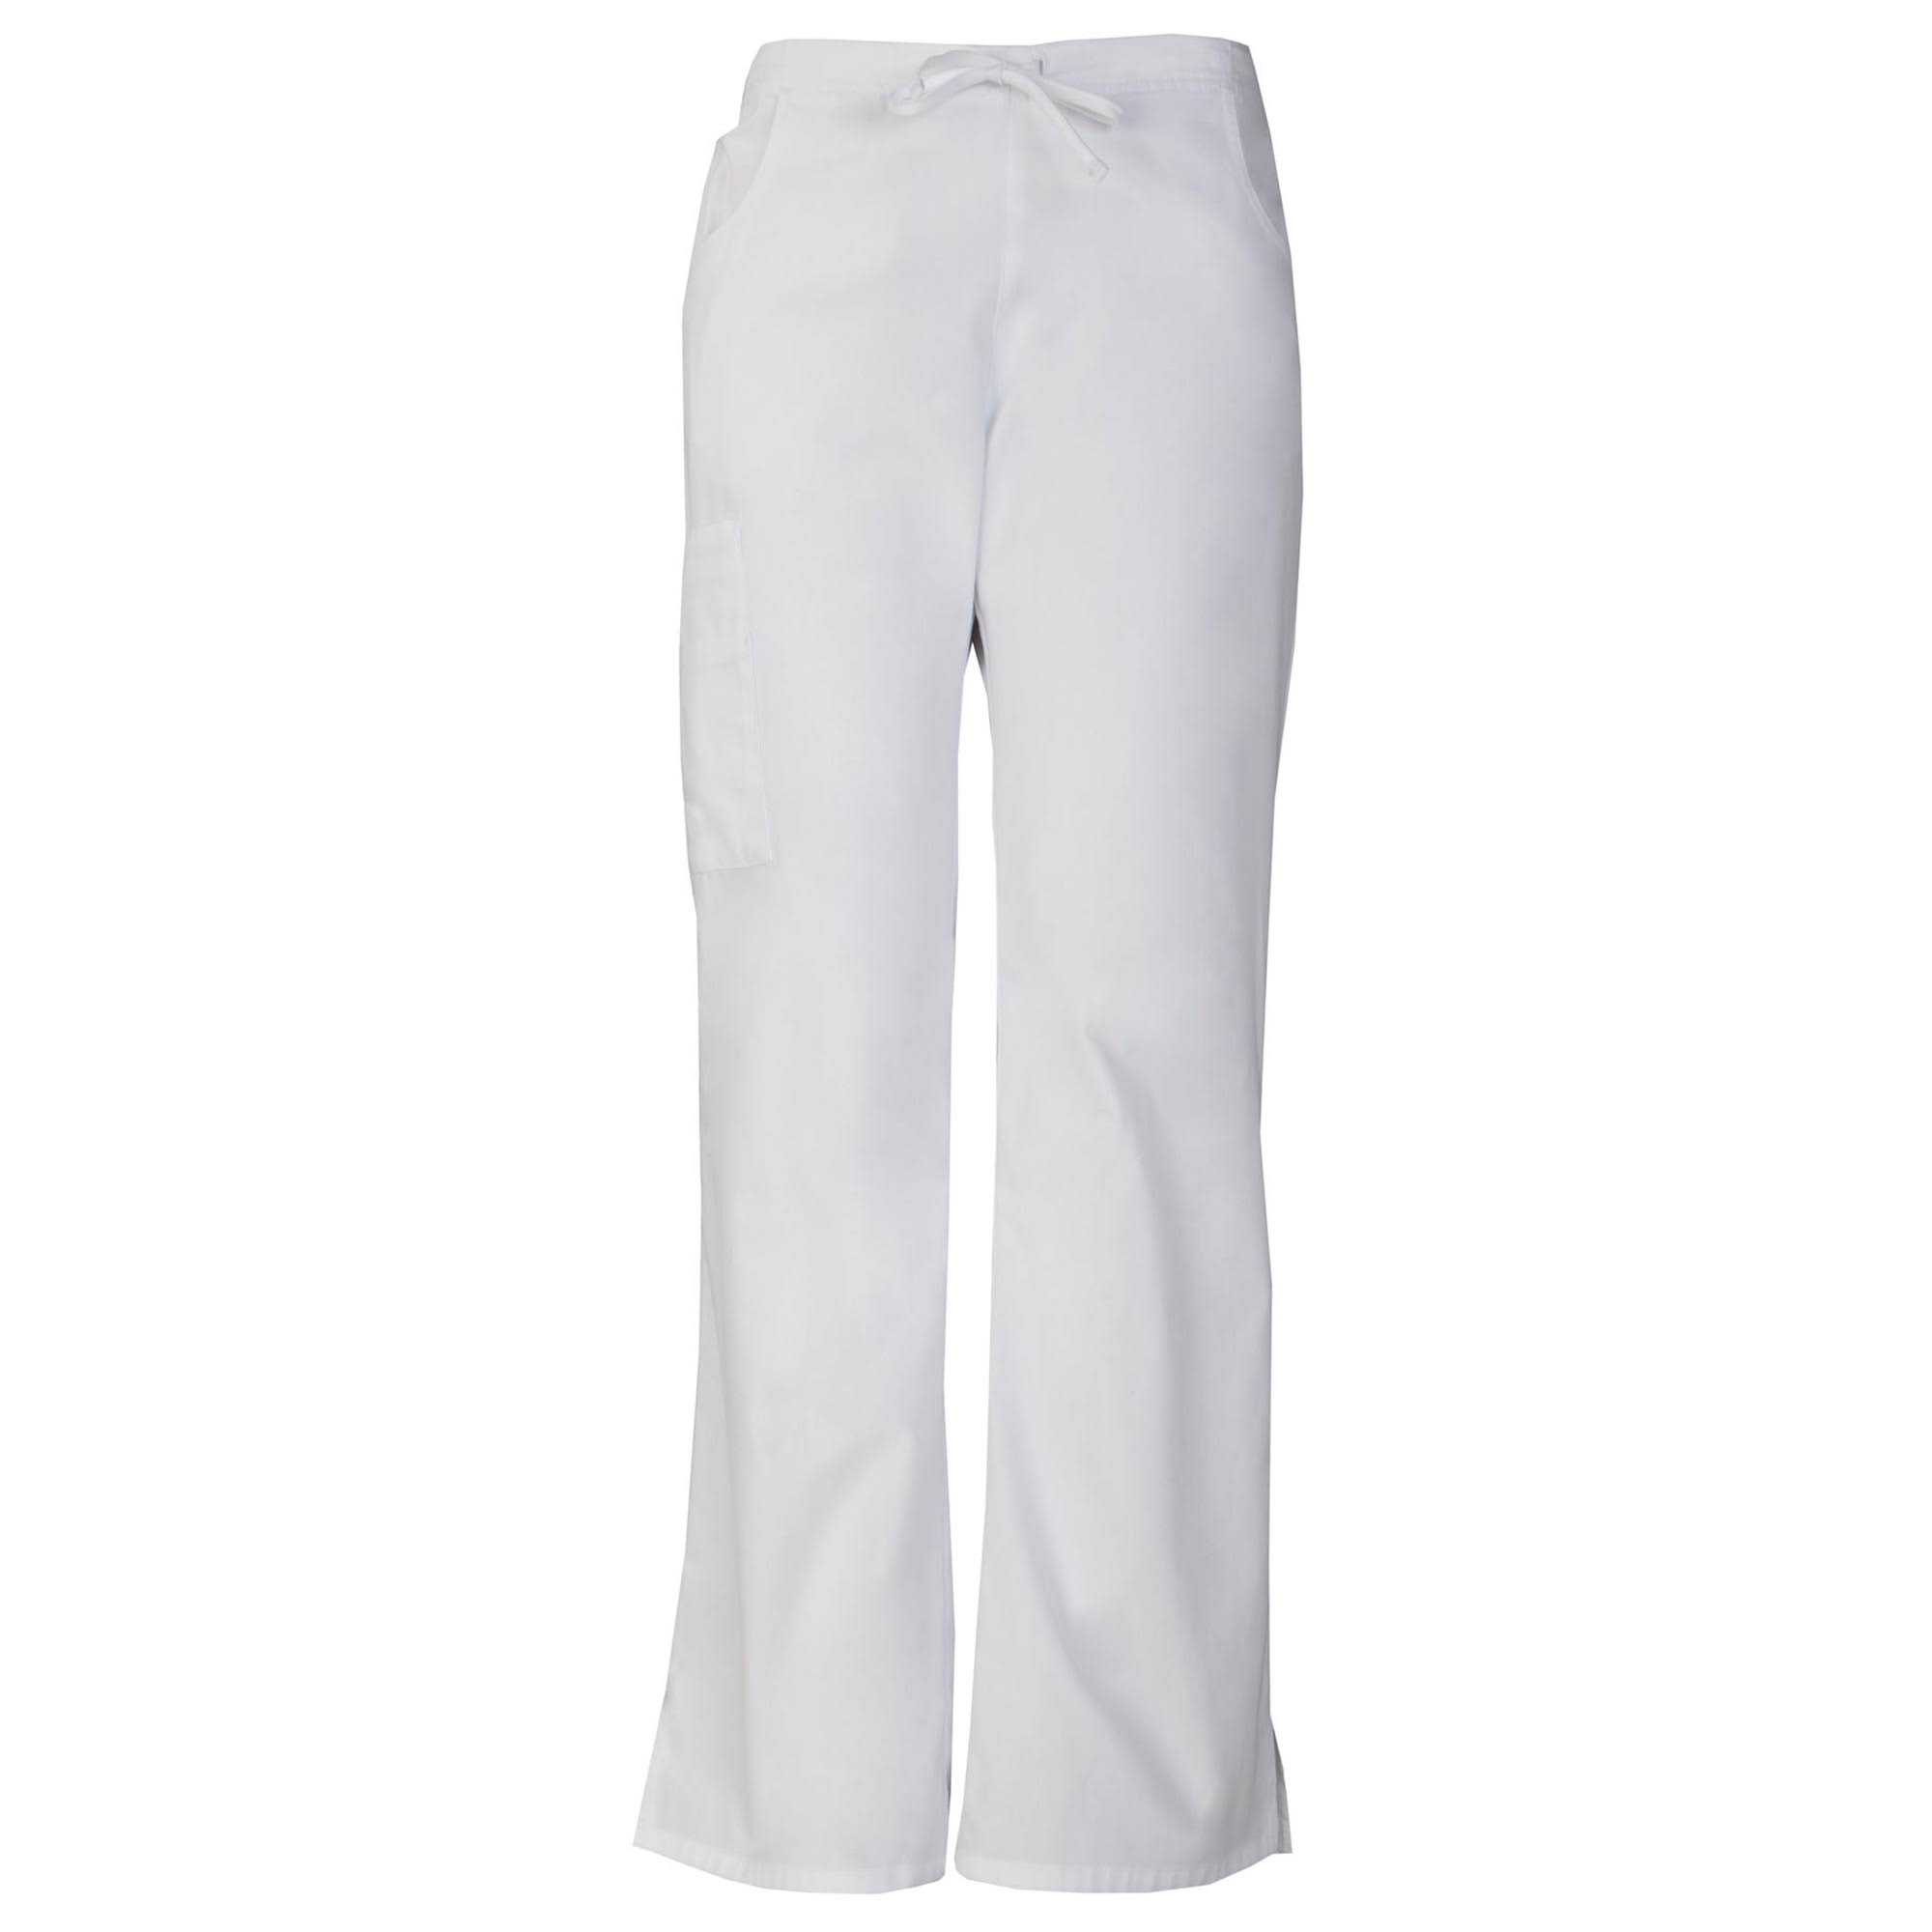 Dickies Women's EDS Signature Midrise Drawstring Cargo Pants - White, XLarge